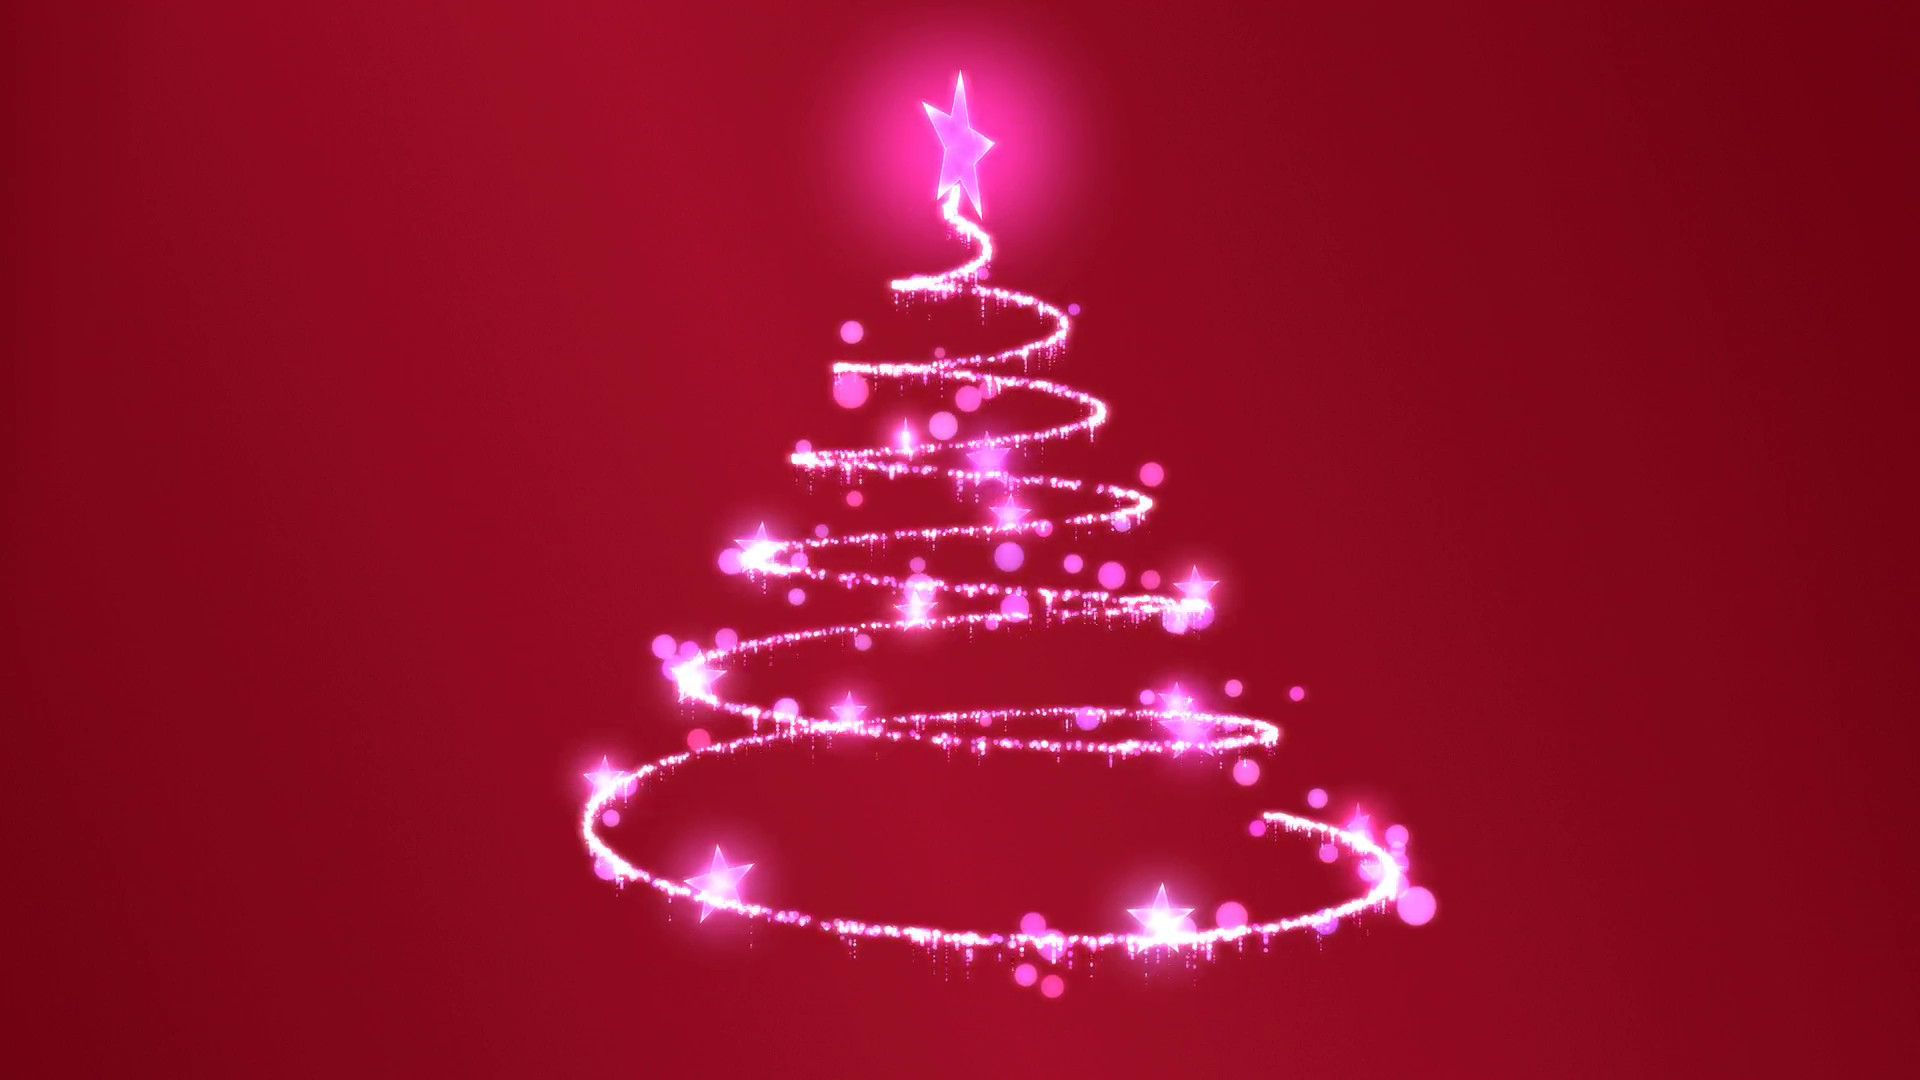 1920x1080 rotating christmas tree animation loop pink red motion background  videoblocks